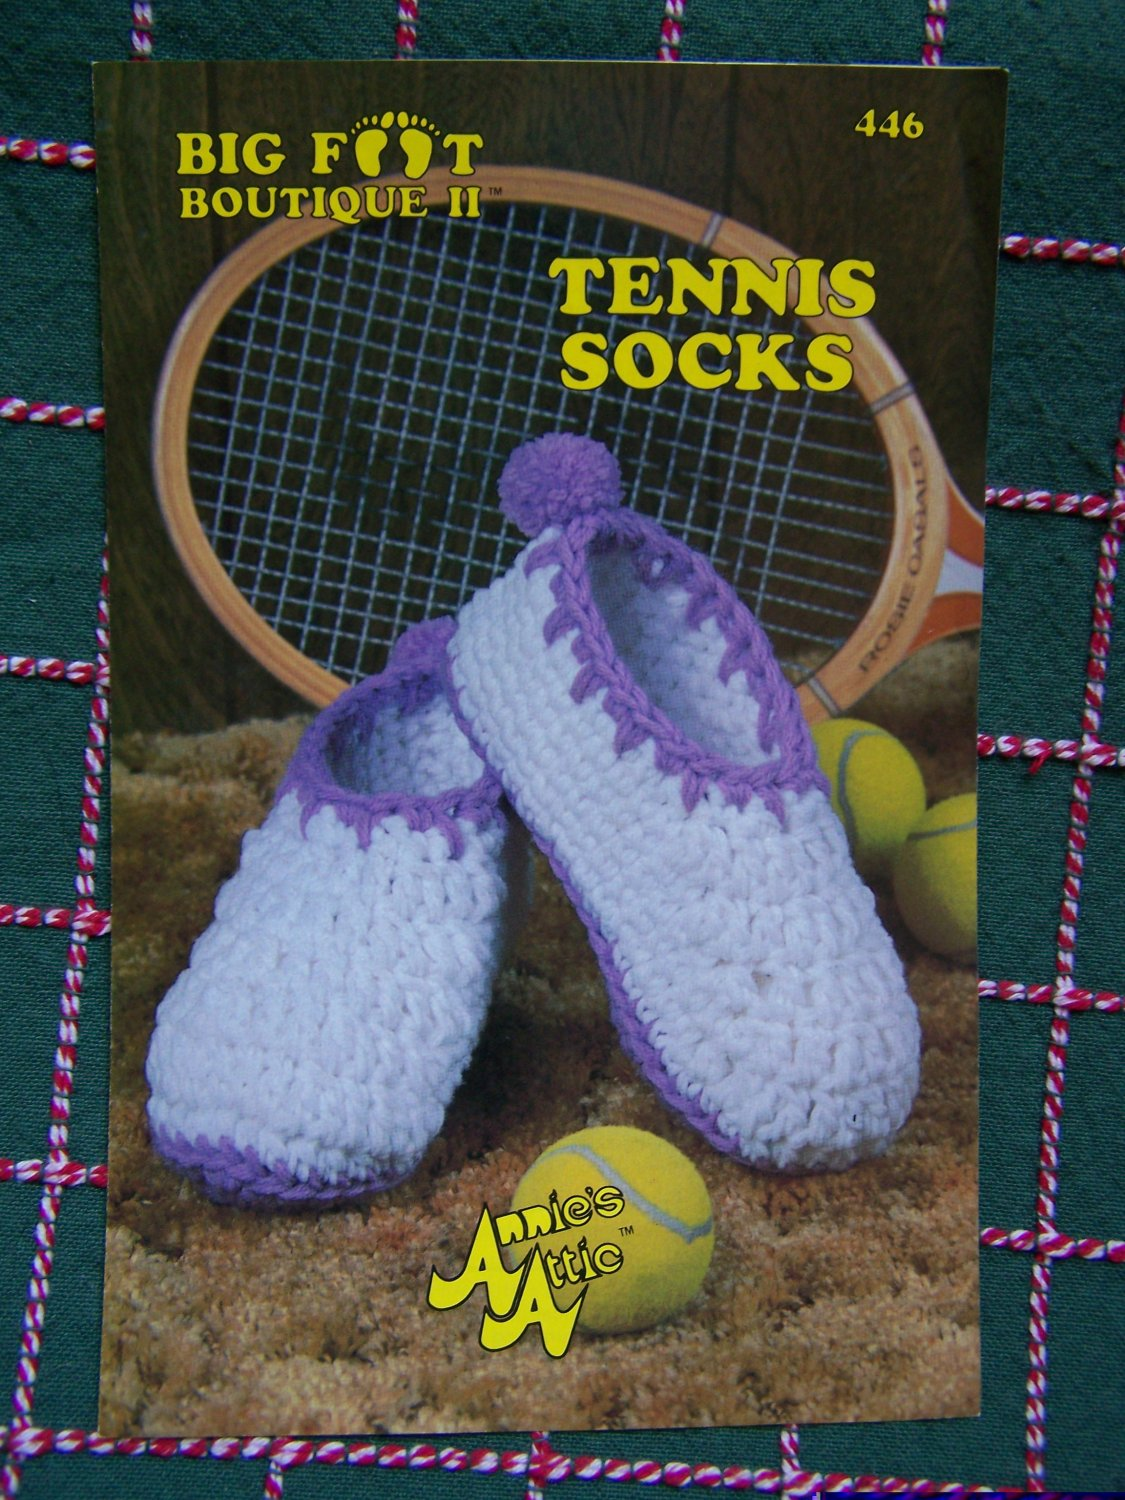 0 USA S&H 1980's Vintage Annie's Crocheted Tennis Socks Pattern Big Foot Boutique ll